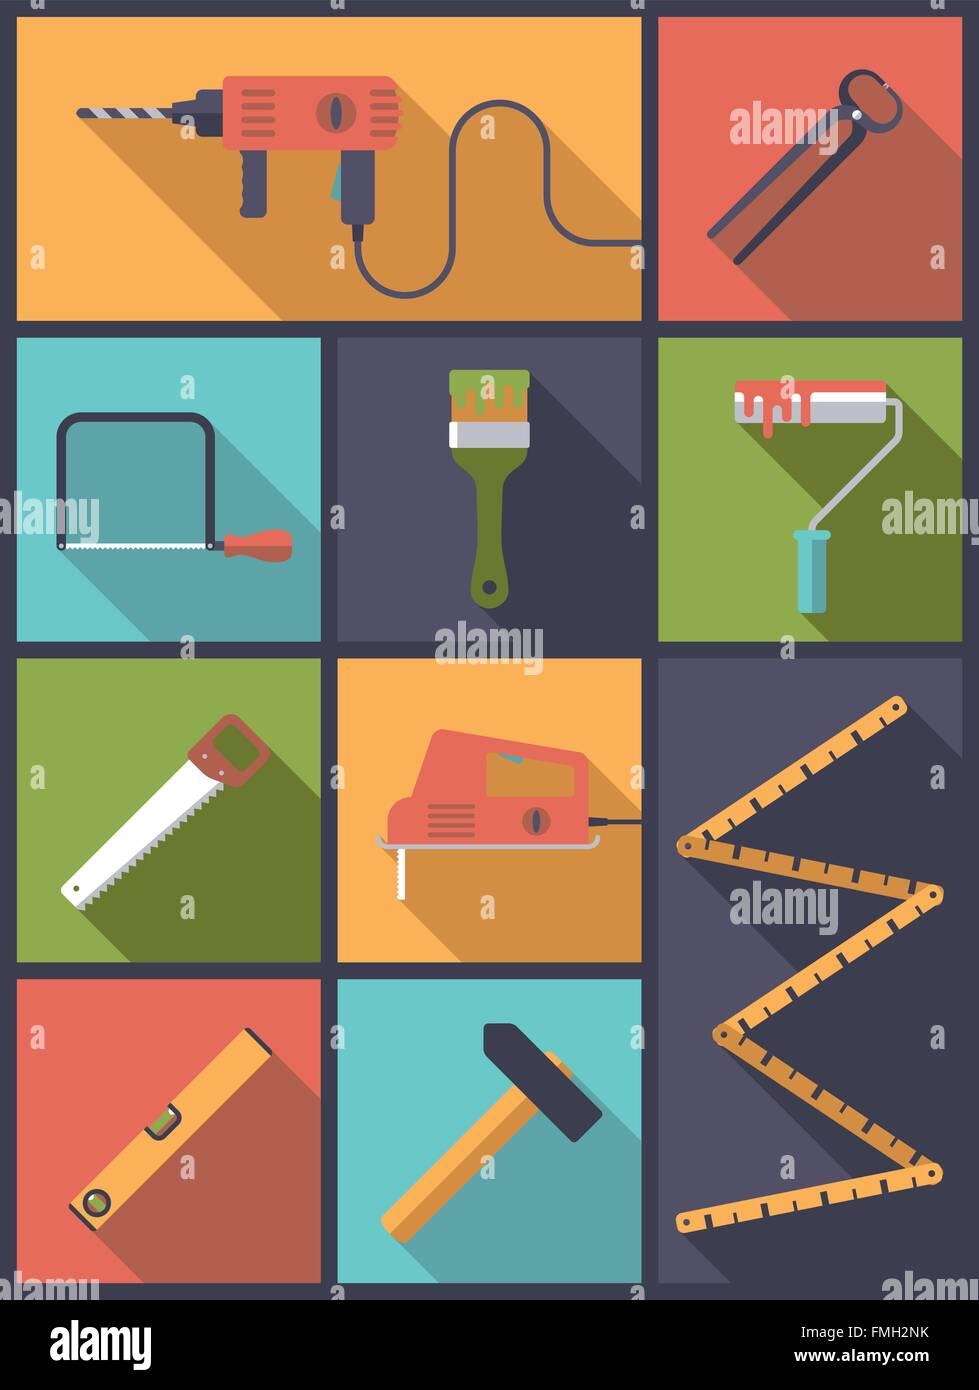 Flat design illustration with various icons related to home improvement and crafts - Stock Vector